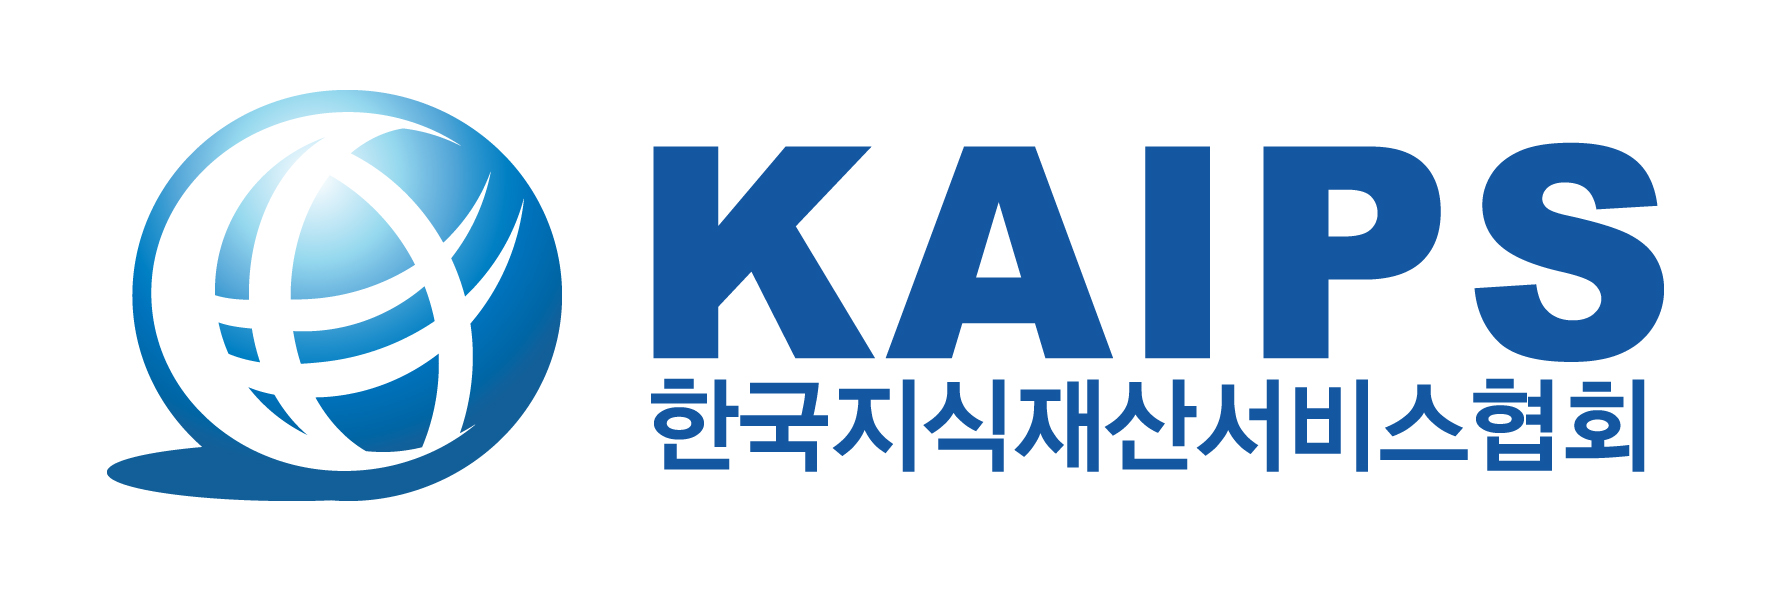 Korean Association for Intellectual Property Services